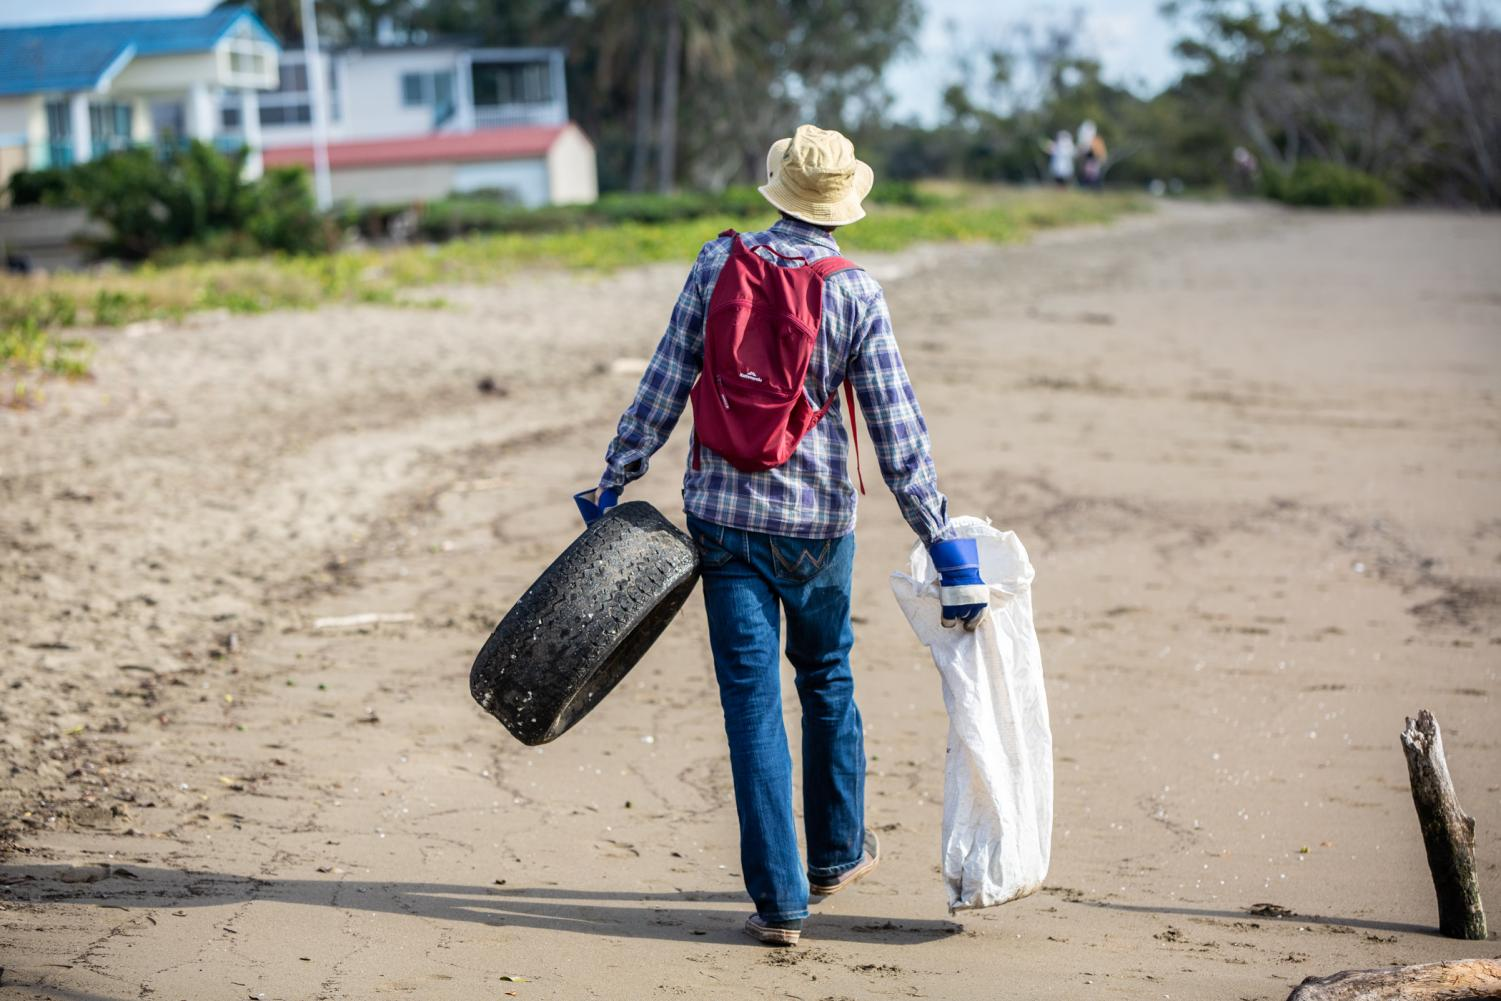 Volunteer returns carrying a discarded rubber tyre and bag of plastic debris after scouring the beach in search for debris that was dumped or washed ashore.